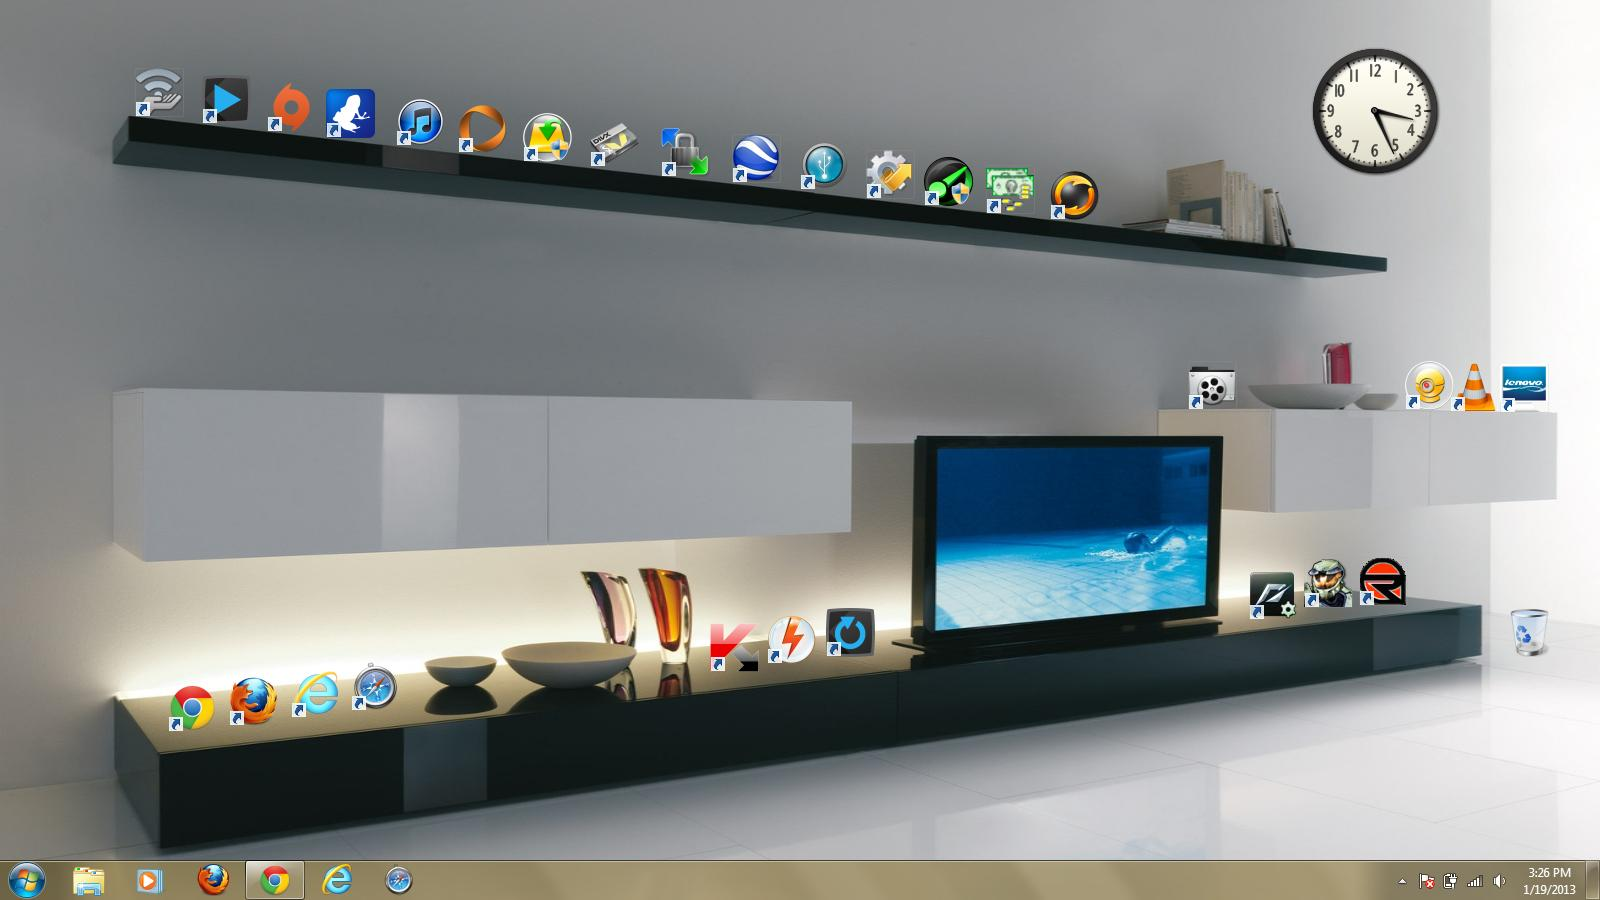 Shelf desktop background - wallpapersafari.